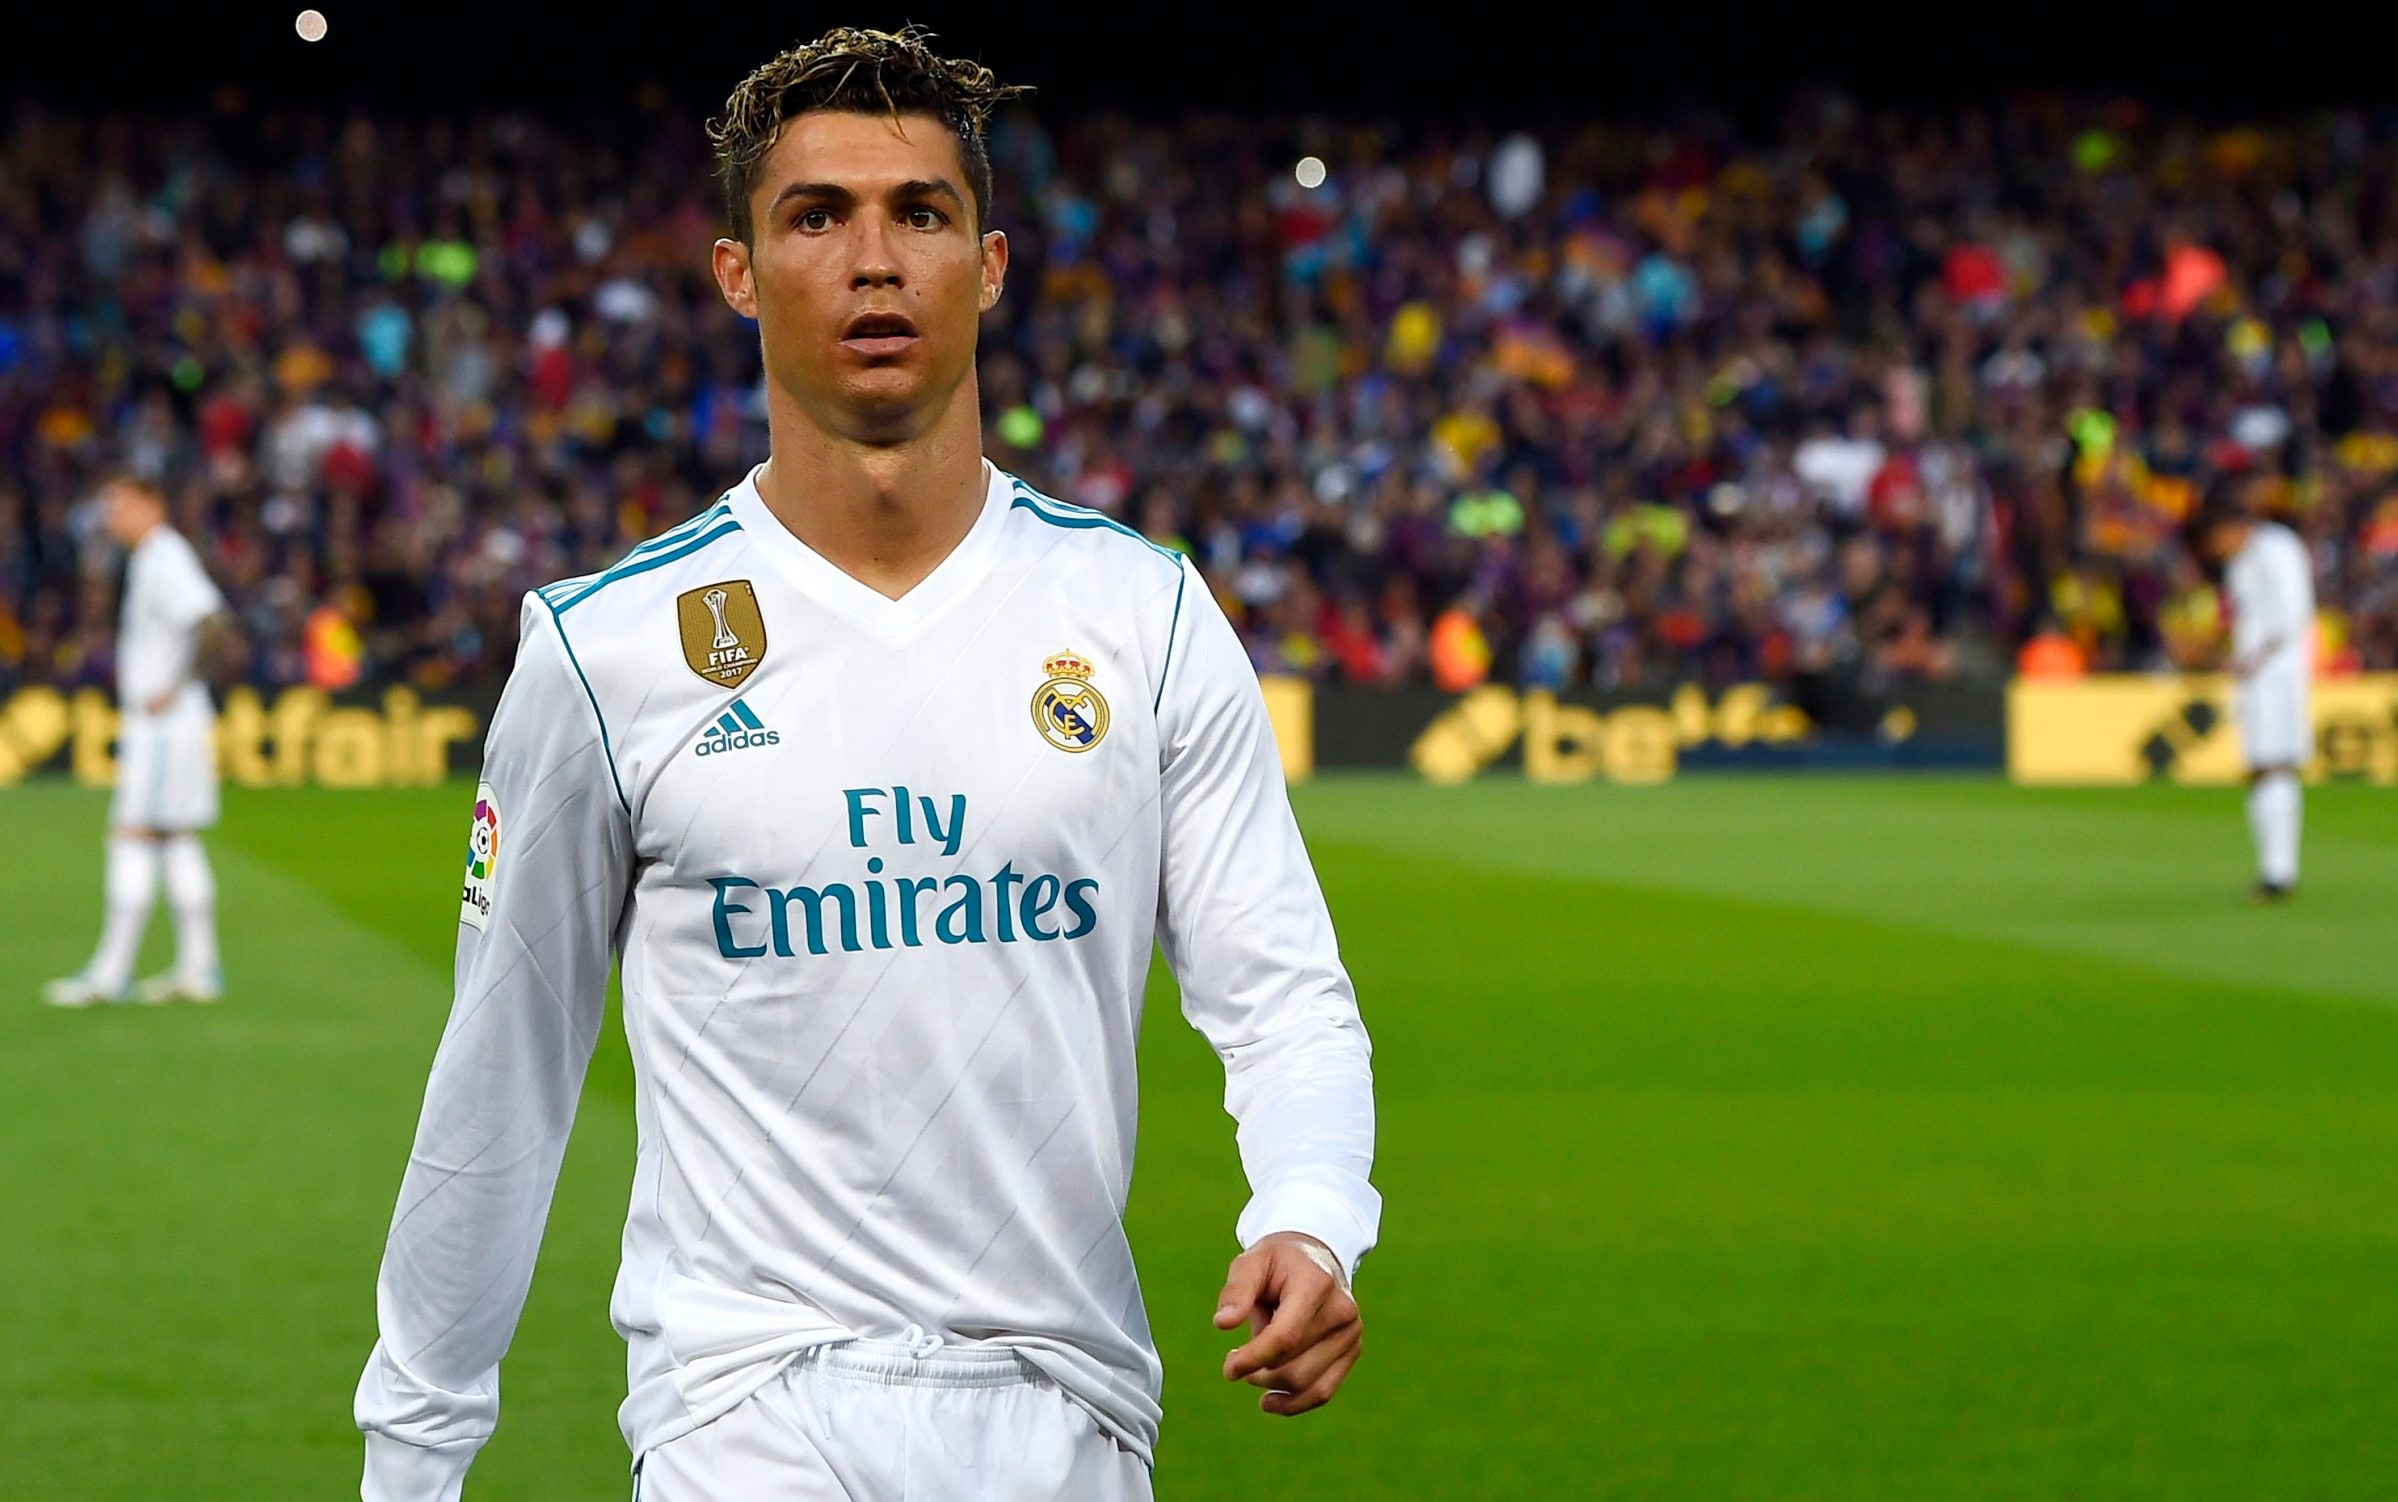 La Liga Boss Excited By Talk Of Cristiano Ronaldo S Real Madrid Return He Is Man Made In Madrid It Would Be Beautiful Football Espana